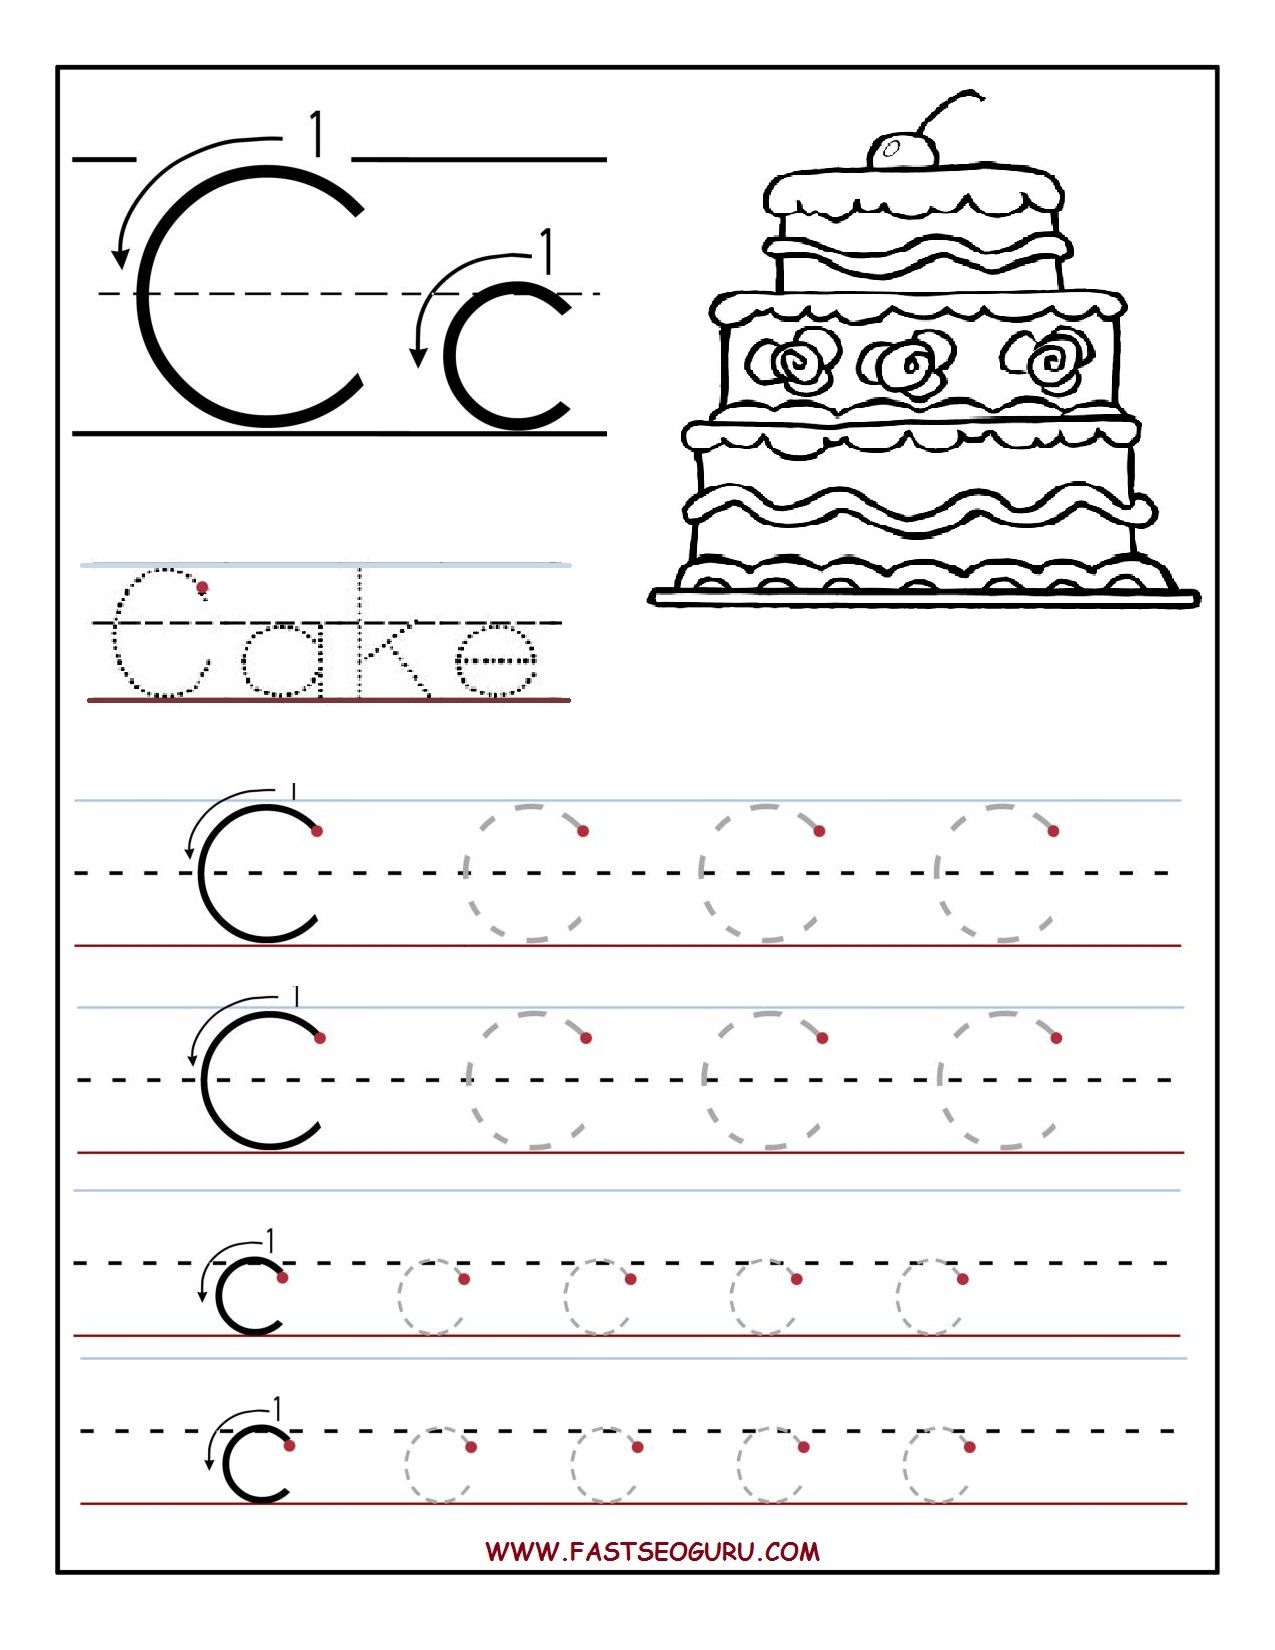 Worksheet Printable Letters For Preschool 1000 images about abcs on pinterest desktop backgrounds alphabet letters and preschool alphabet